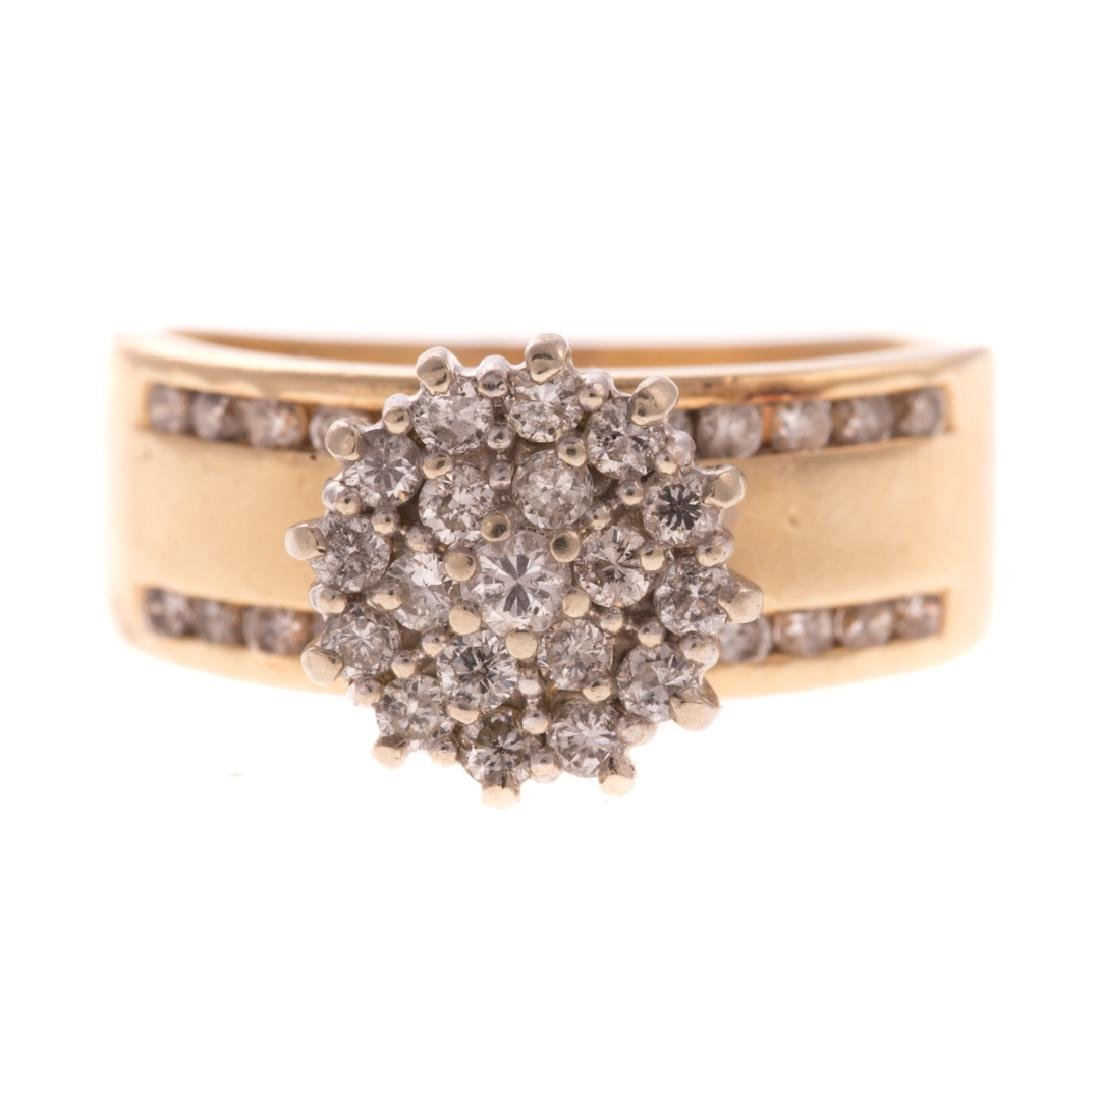 A Lady's Diamond Pendant and Cluster Ring in Gold - 3